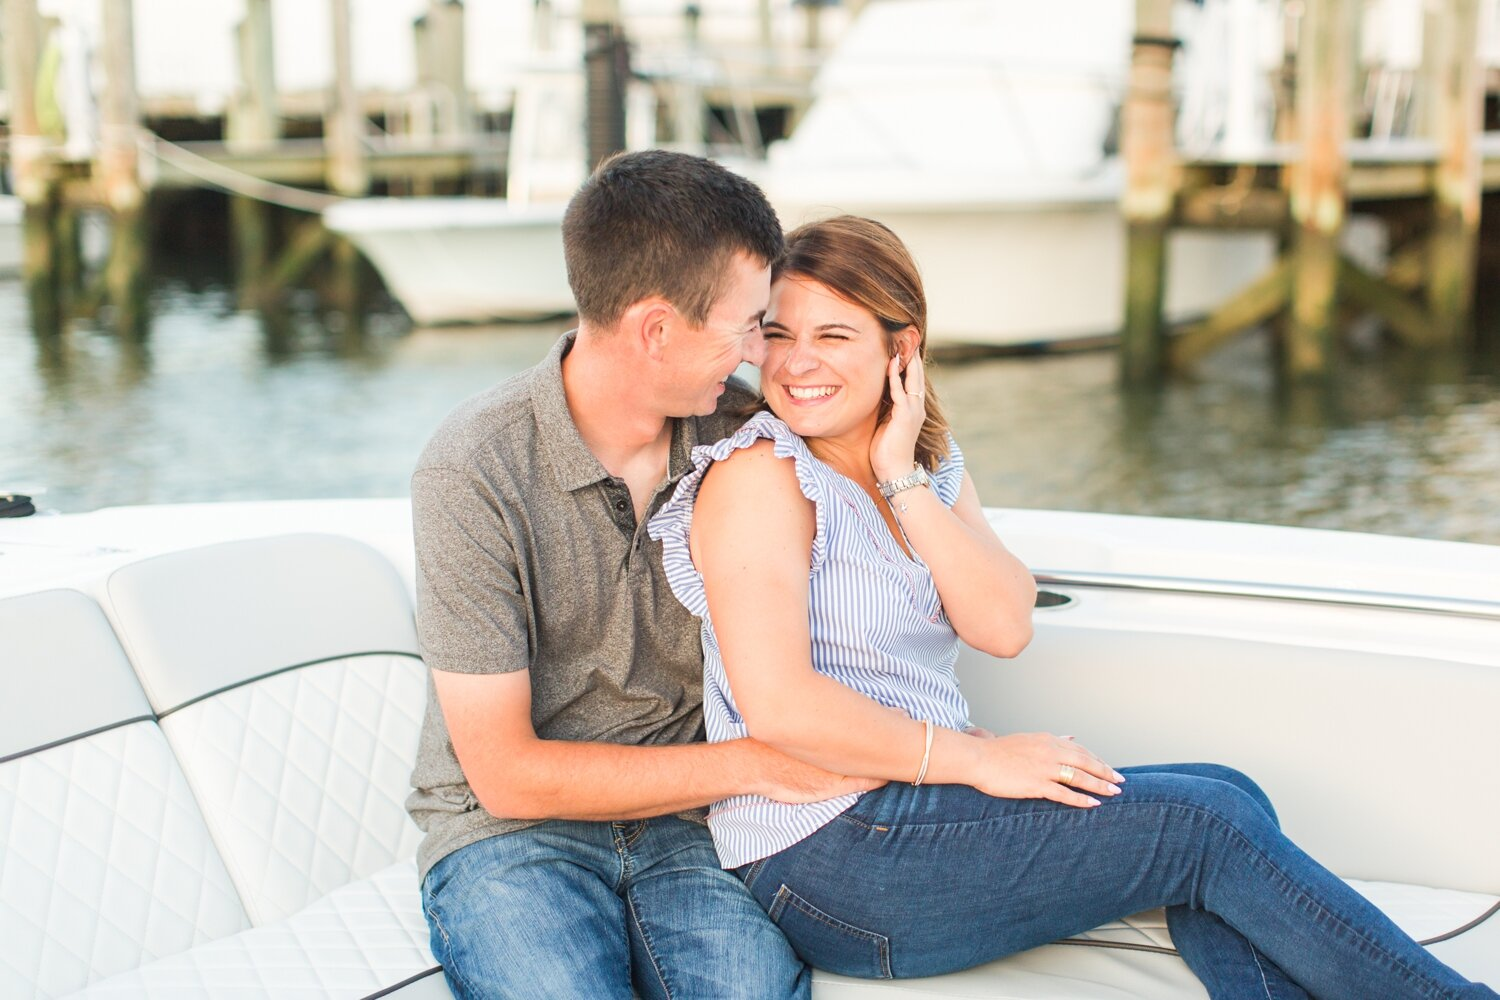 saybrook-point-inn-marina-spa-engagement-session-old-saybrook-connecticut-wedding-photographer-shaina-lee-photography-photo-14.jpg